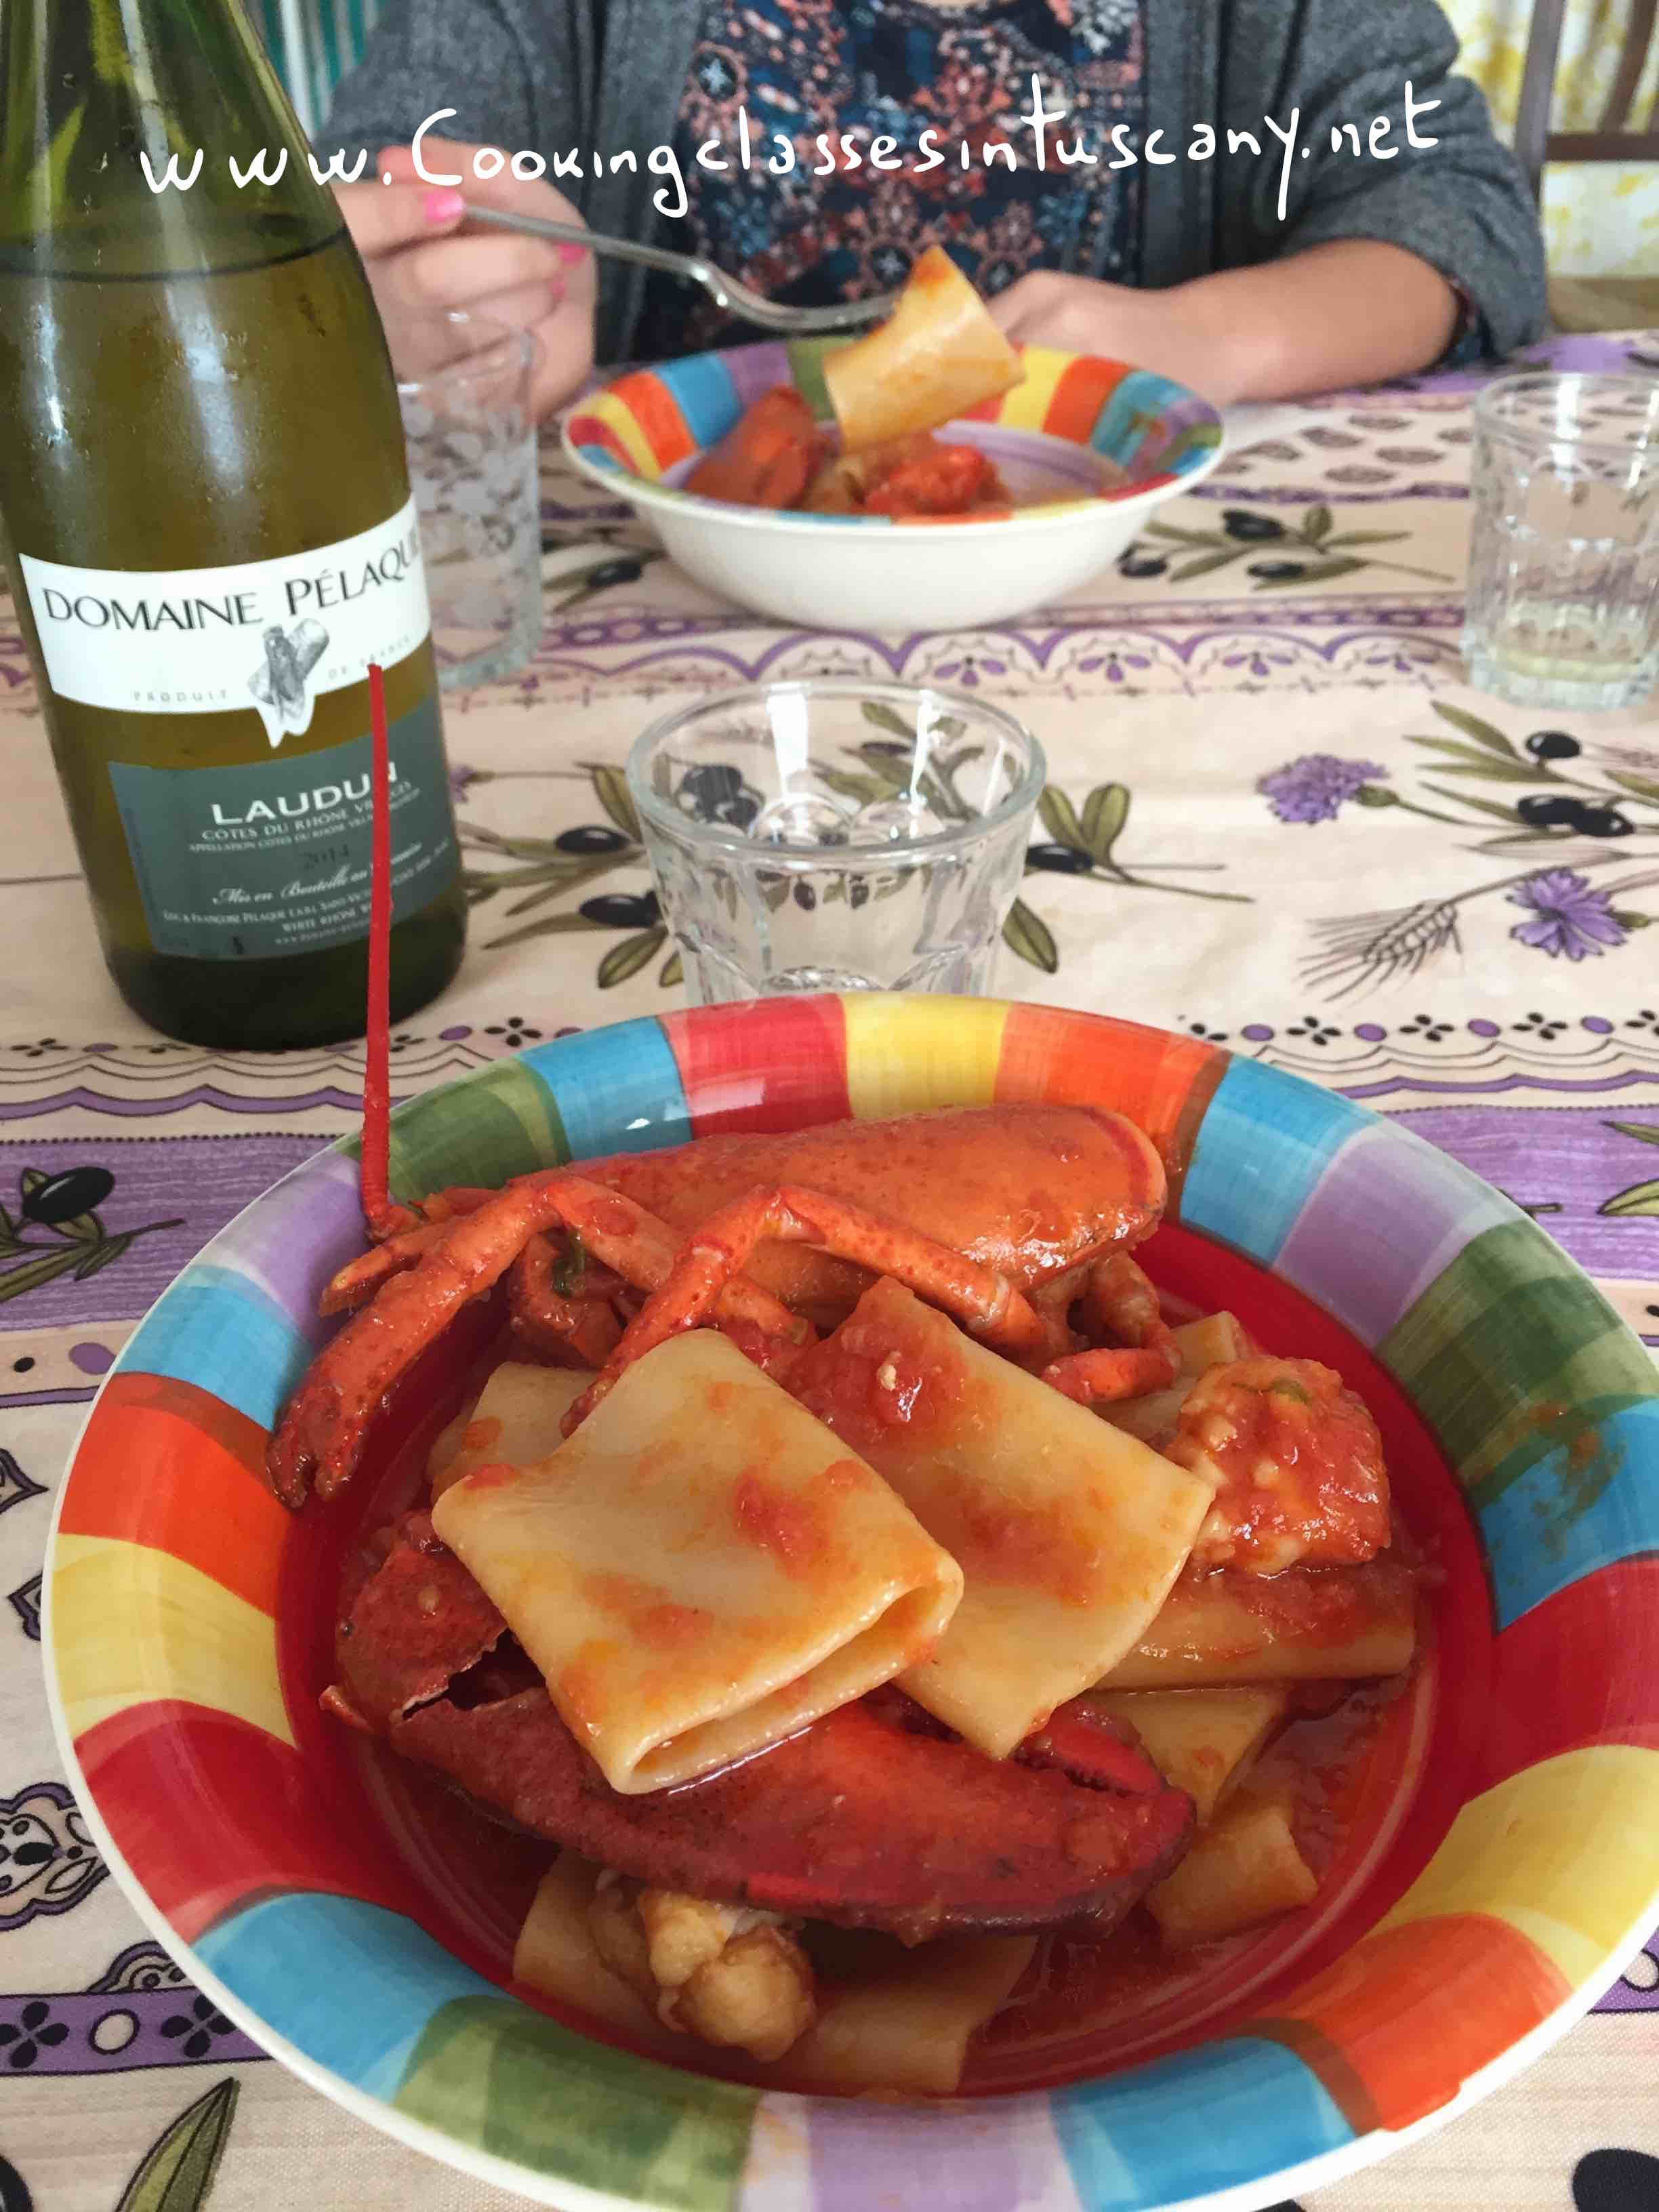 wedding dinner in tuscany with cuocheinvacanza (chefs on holiday) and a perfect lobster recipe